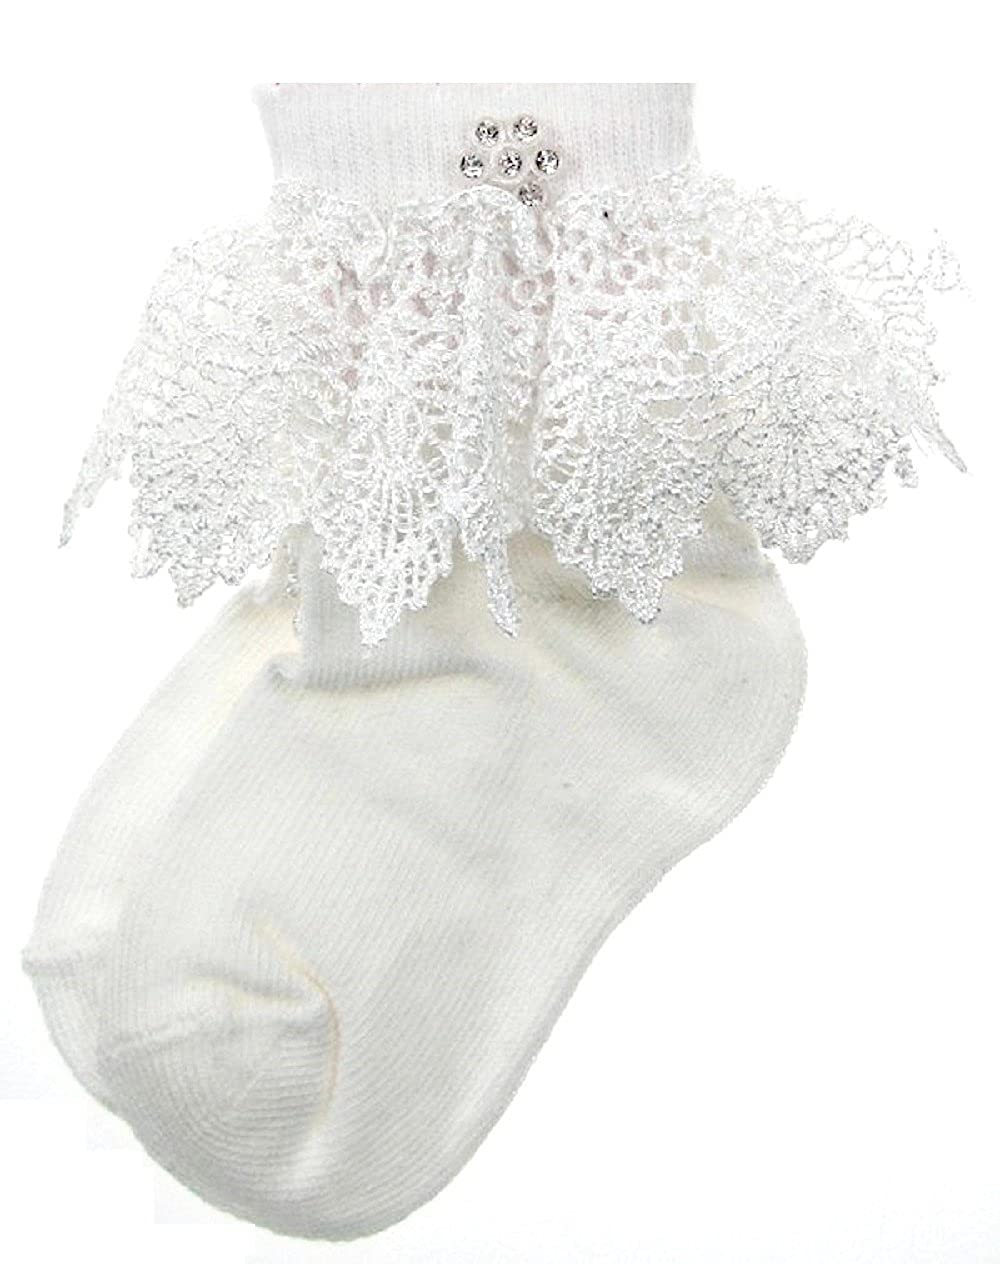 BABY Girls Frilly Socks & Diamante Flower White or Cream Christening Wedding Size 0-3m or 3-6m or 6-12m